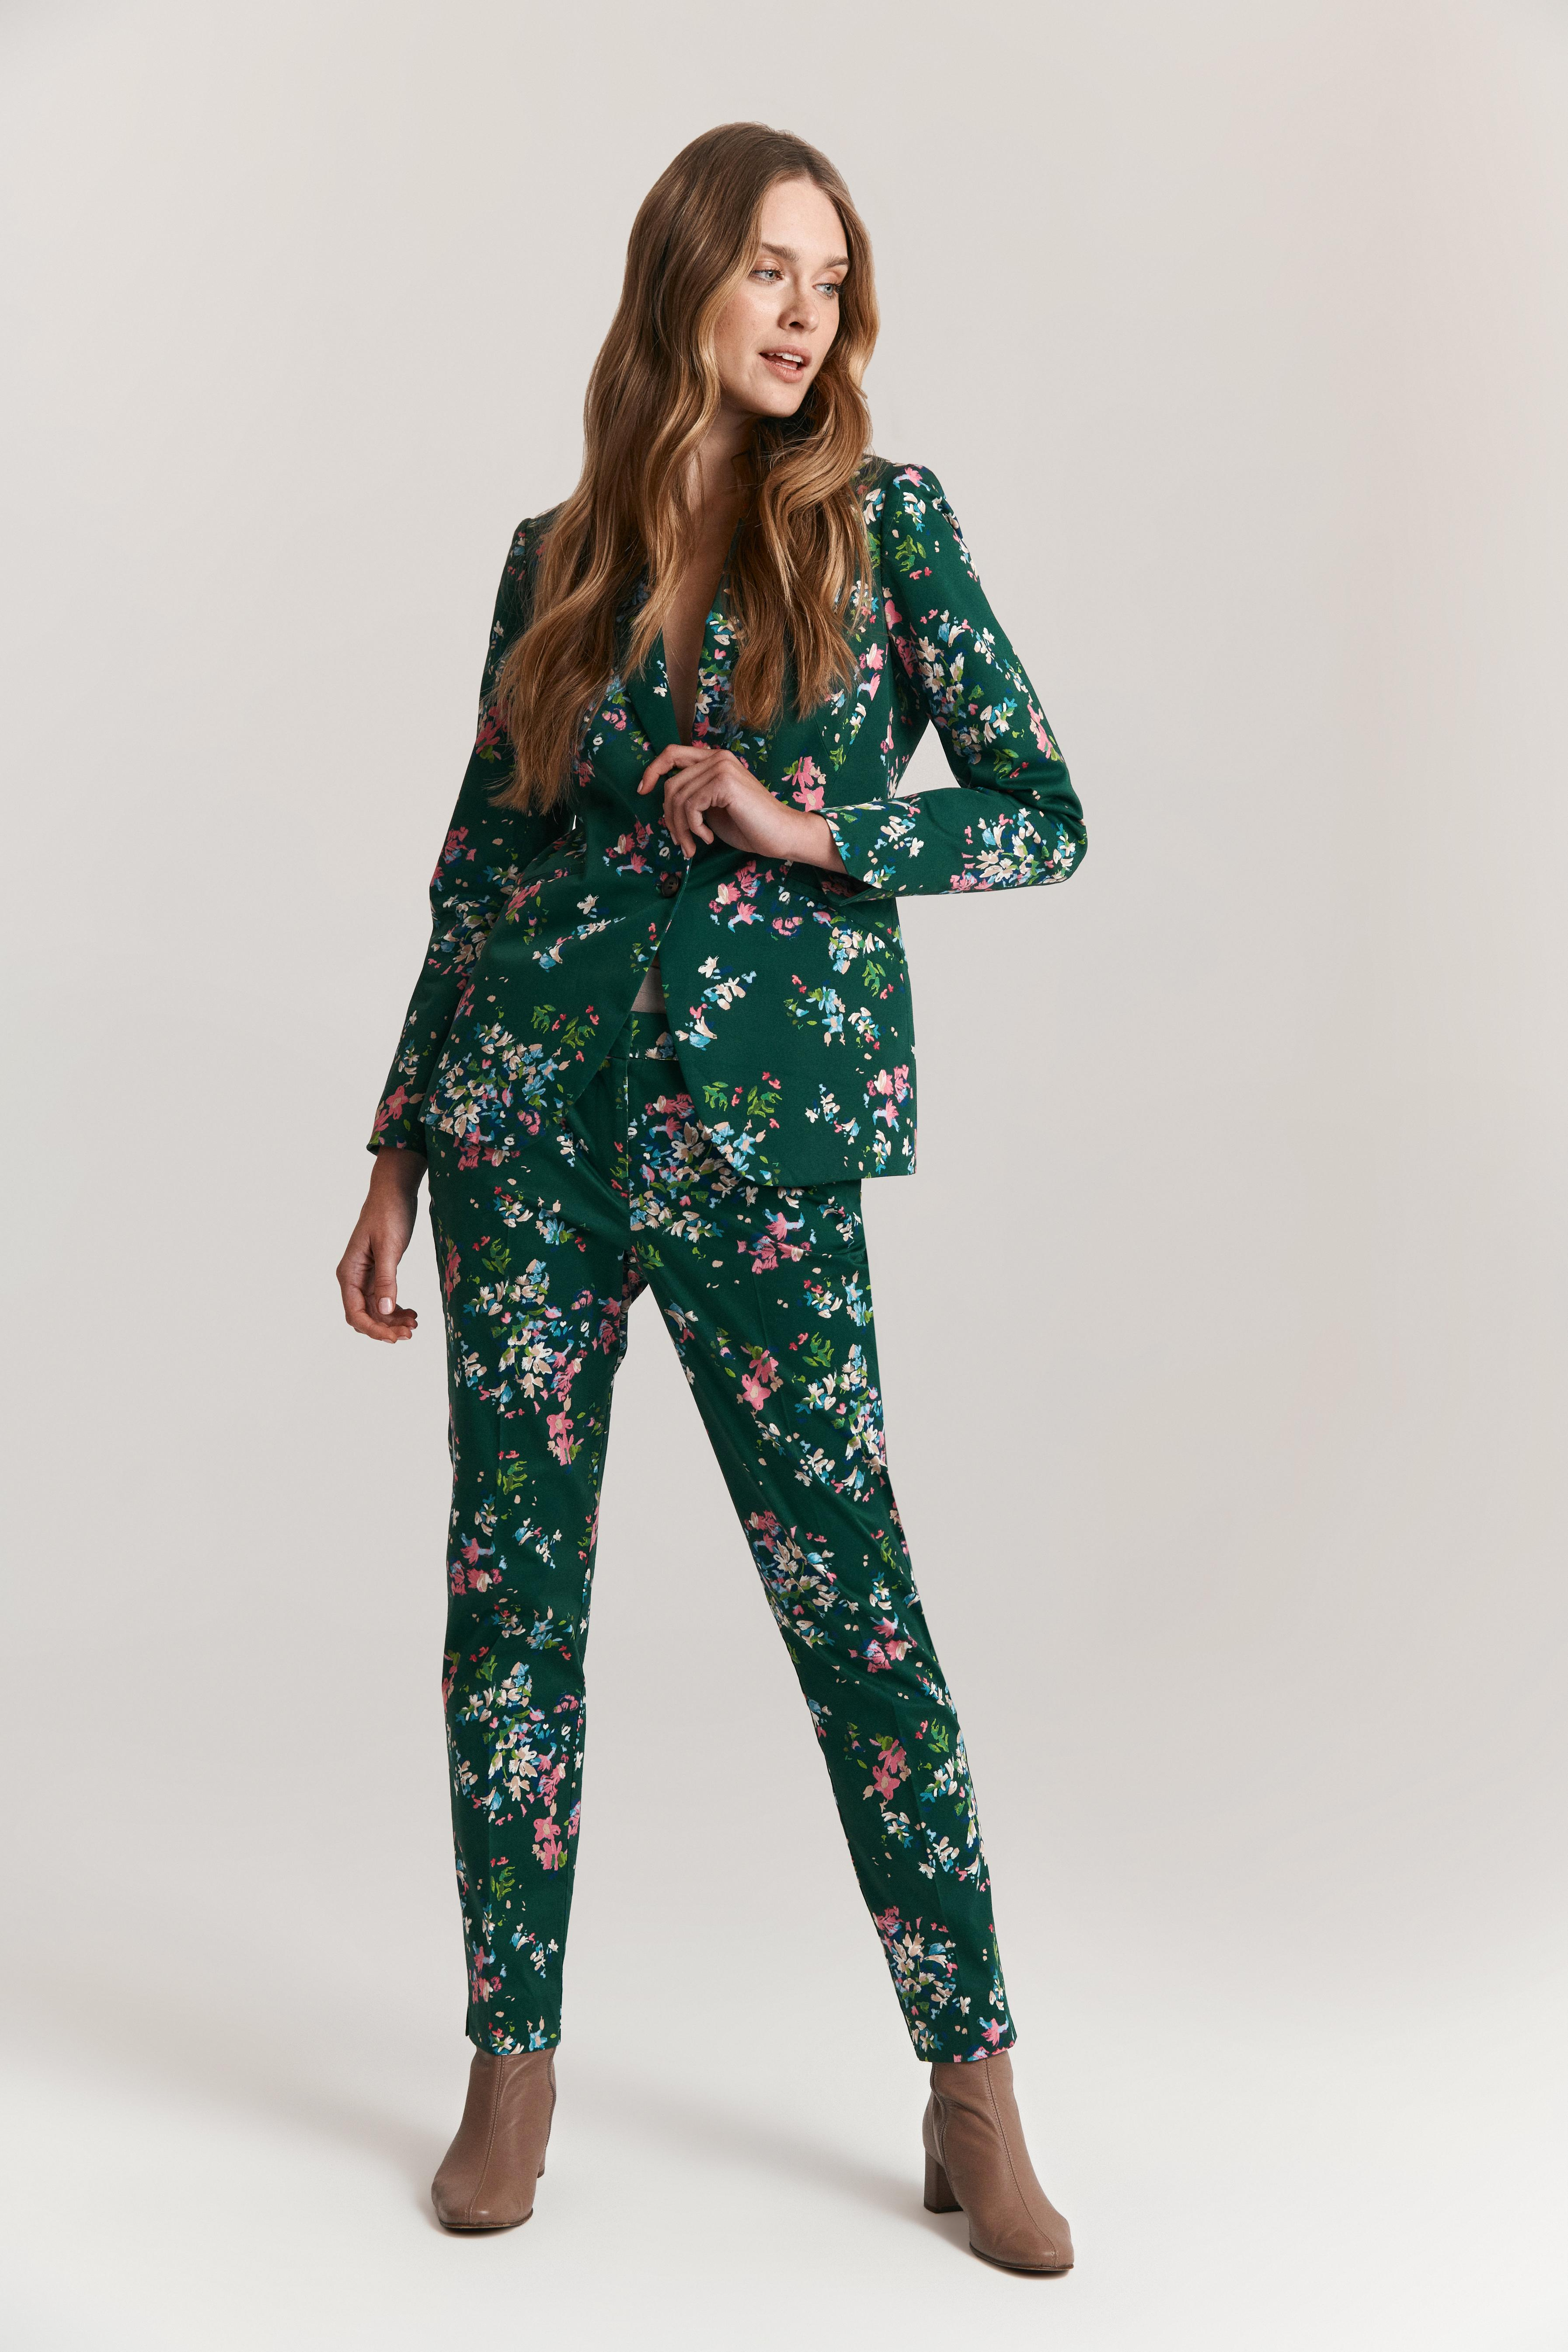 LADIES' FLORAL PANTS JULI